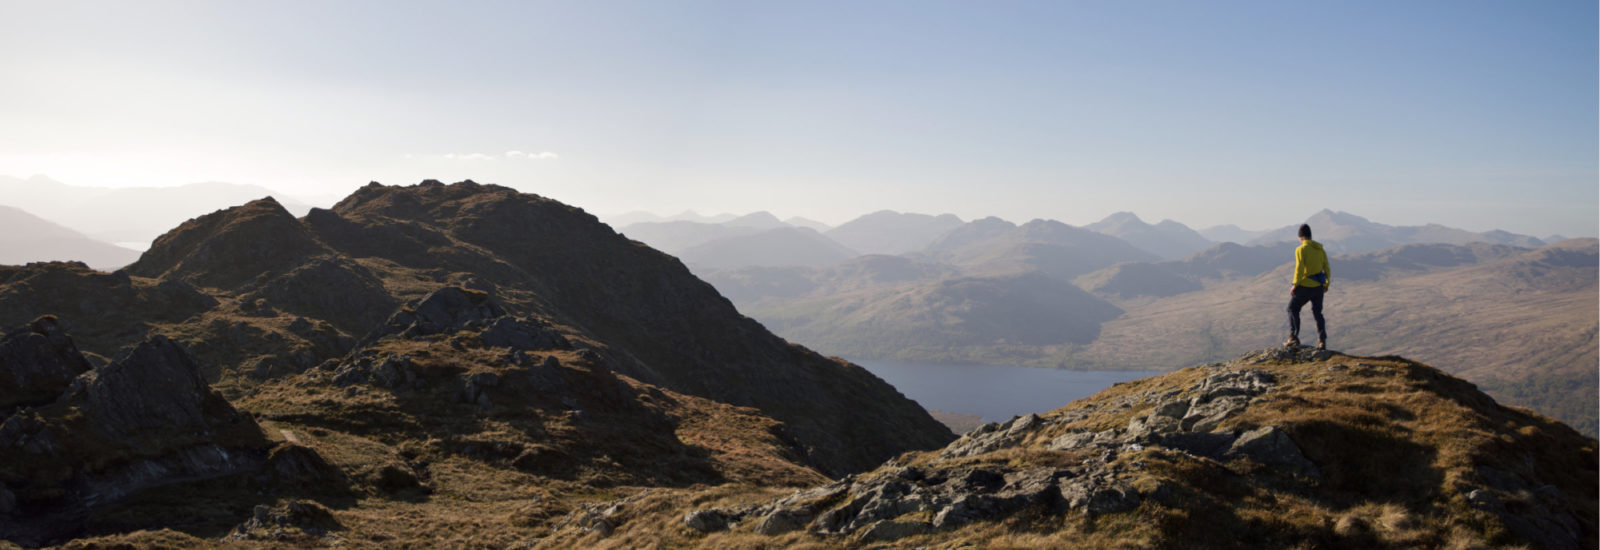 On Ben Venue Looking At The Crianlarich Hills And Loch Katrine